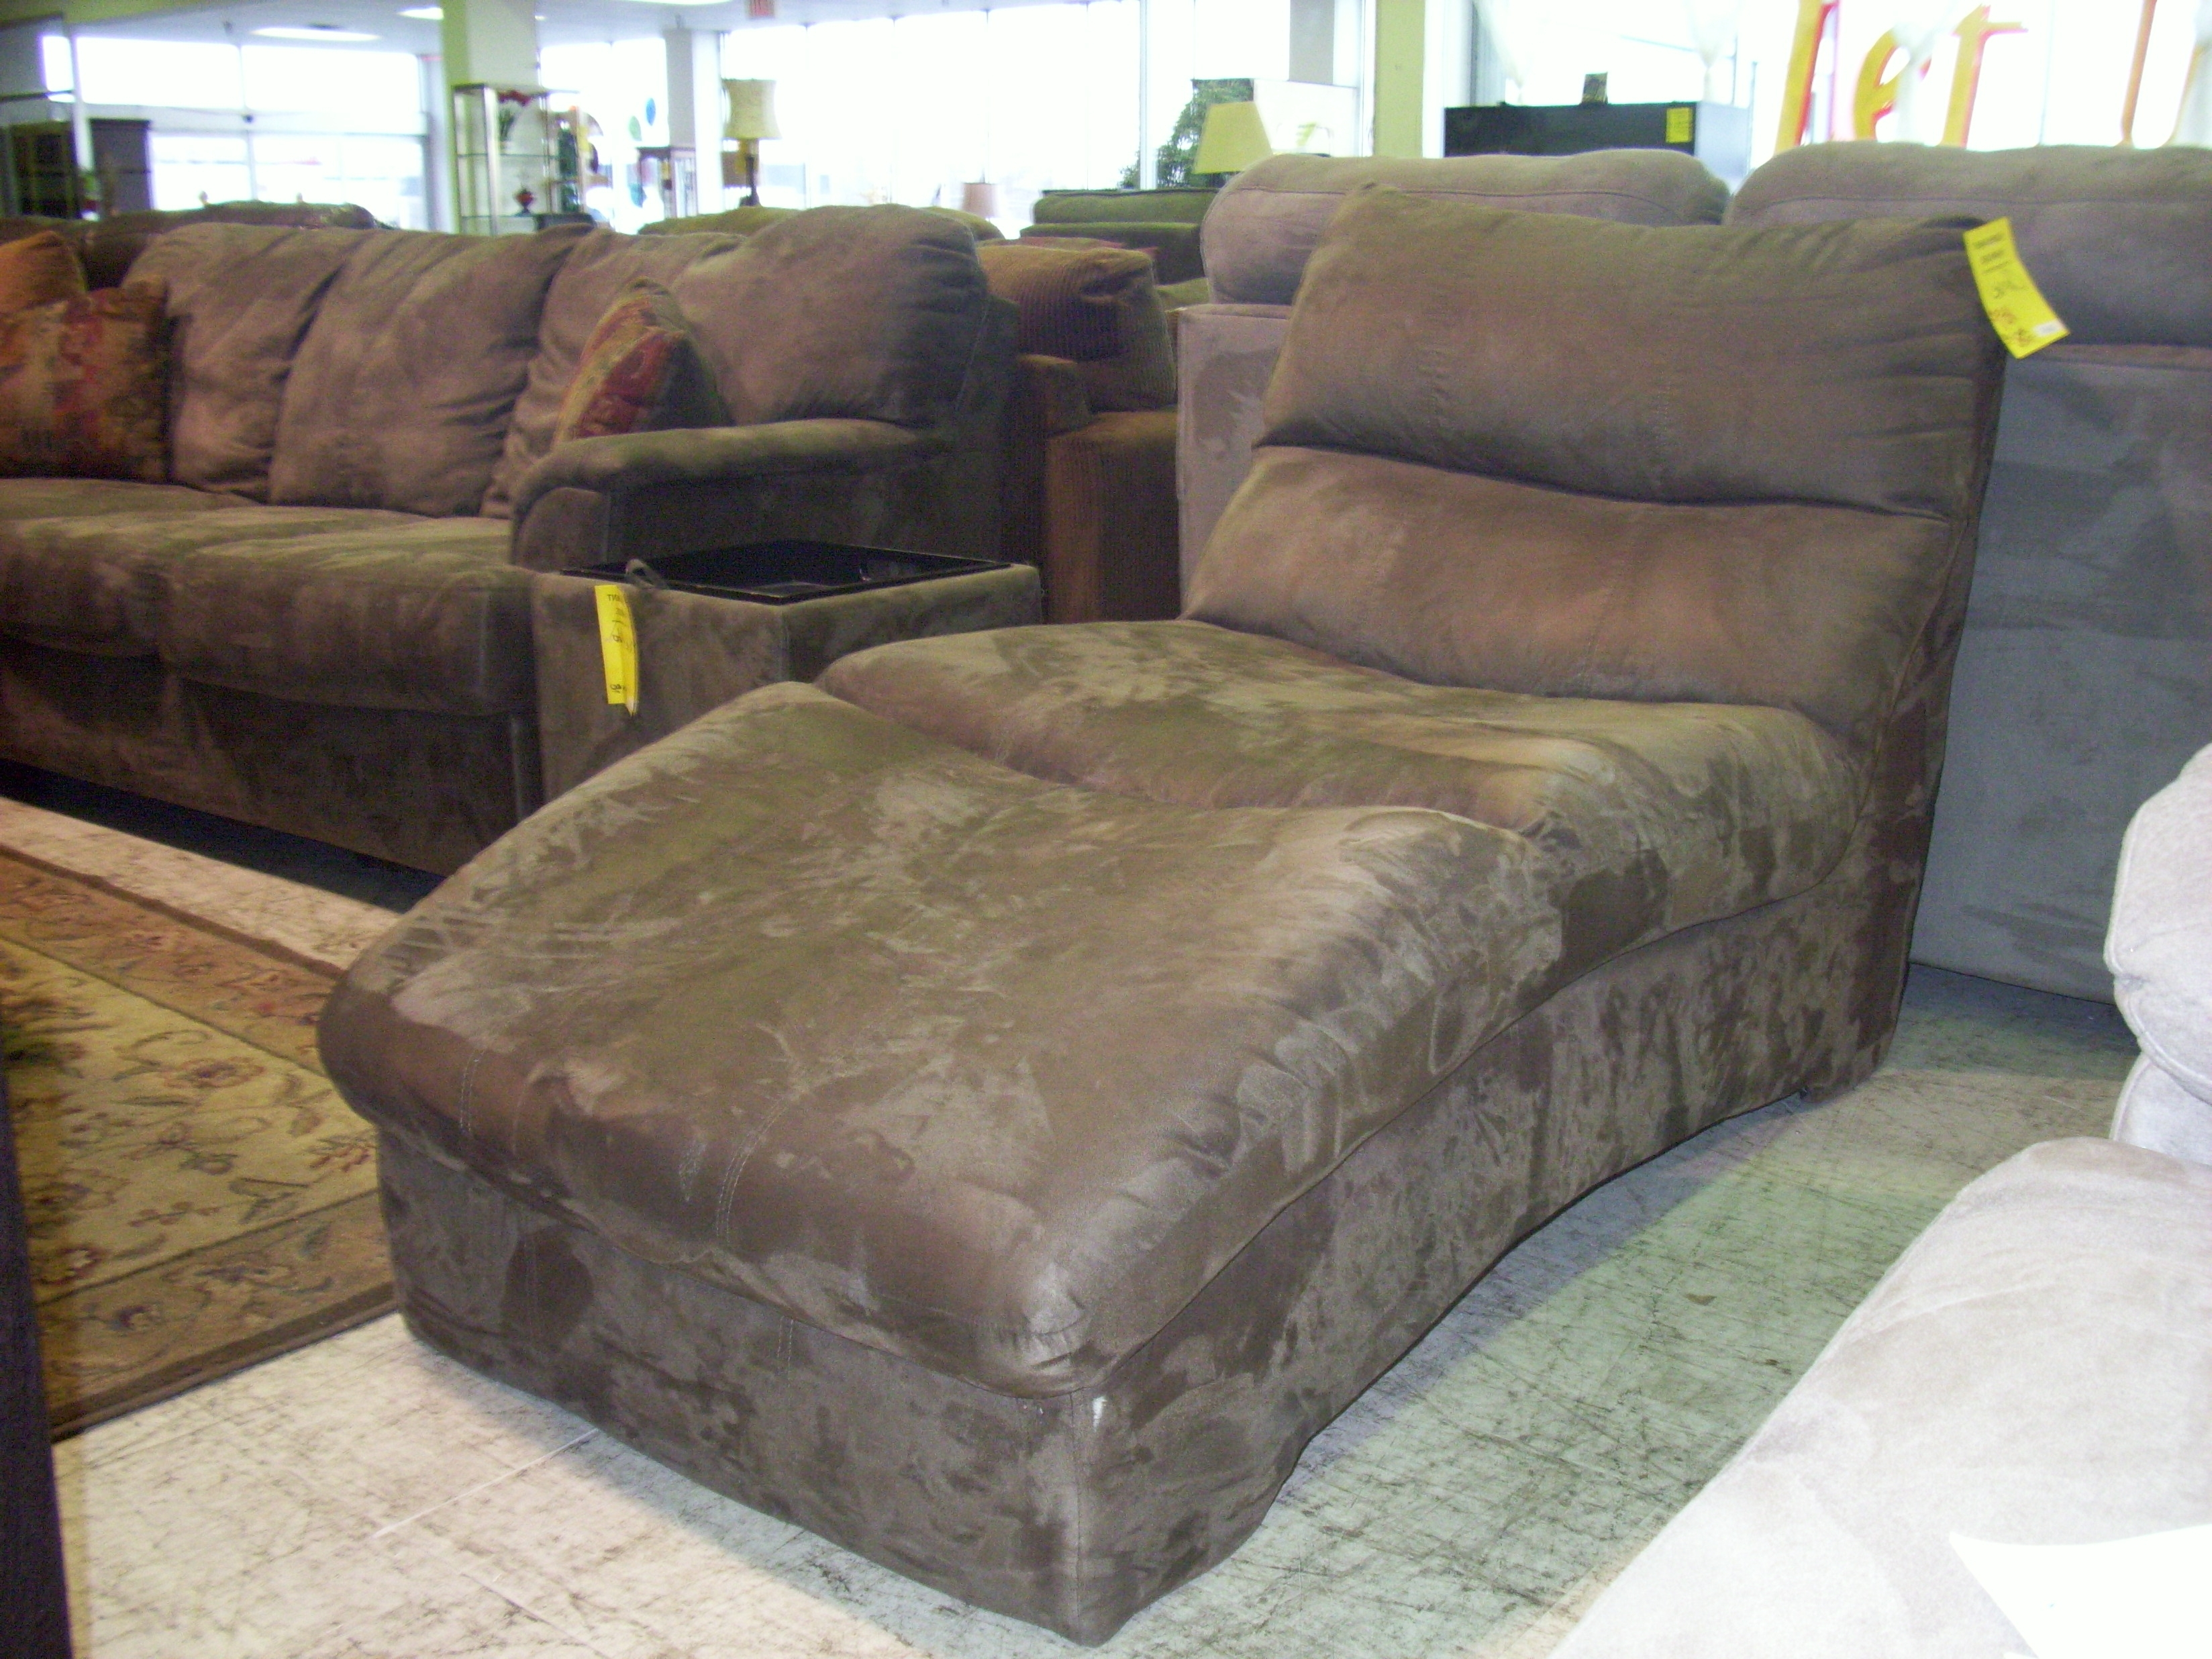 Armless Chaise Lounges Inside Popular Decoration: Standing Magnificent Microfiber Chaise Lounge For (View 2 of 15)